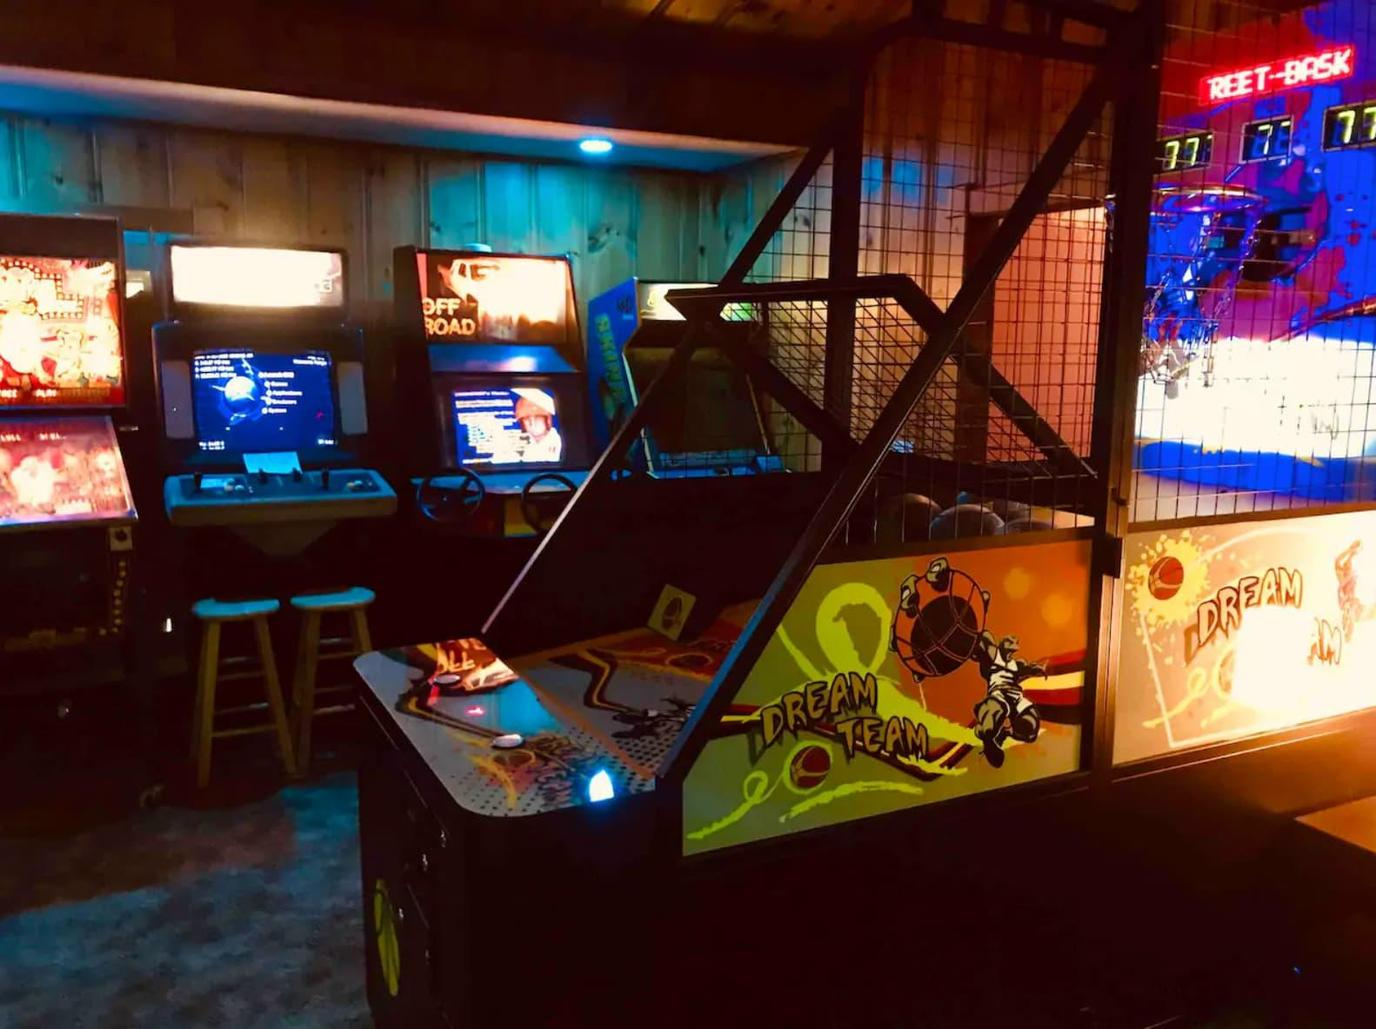 The Arcade-BnB, a Pet-Friendly Themed Vacation Rentals